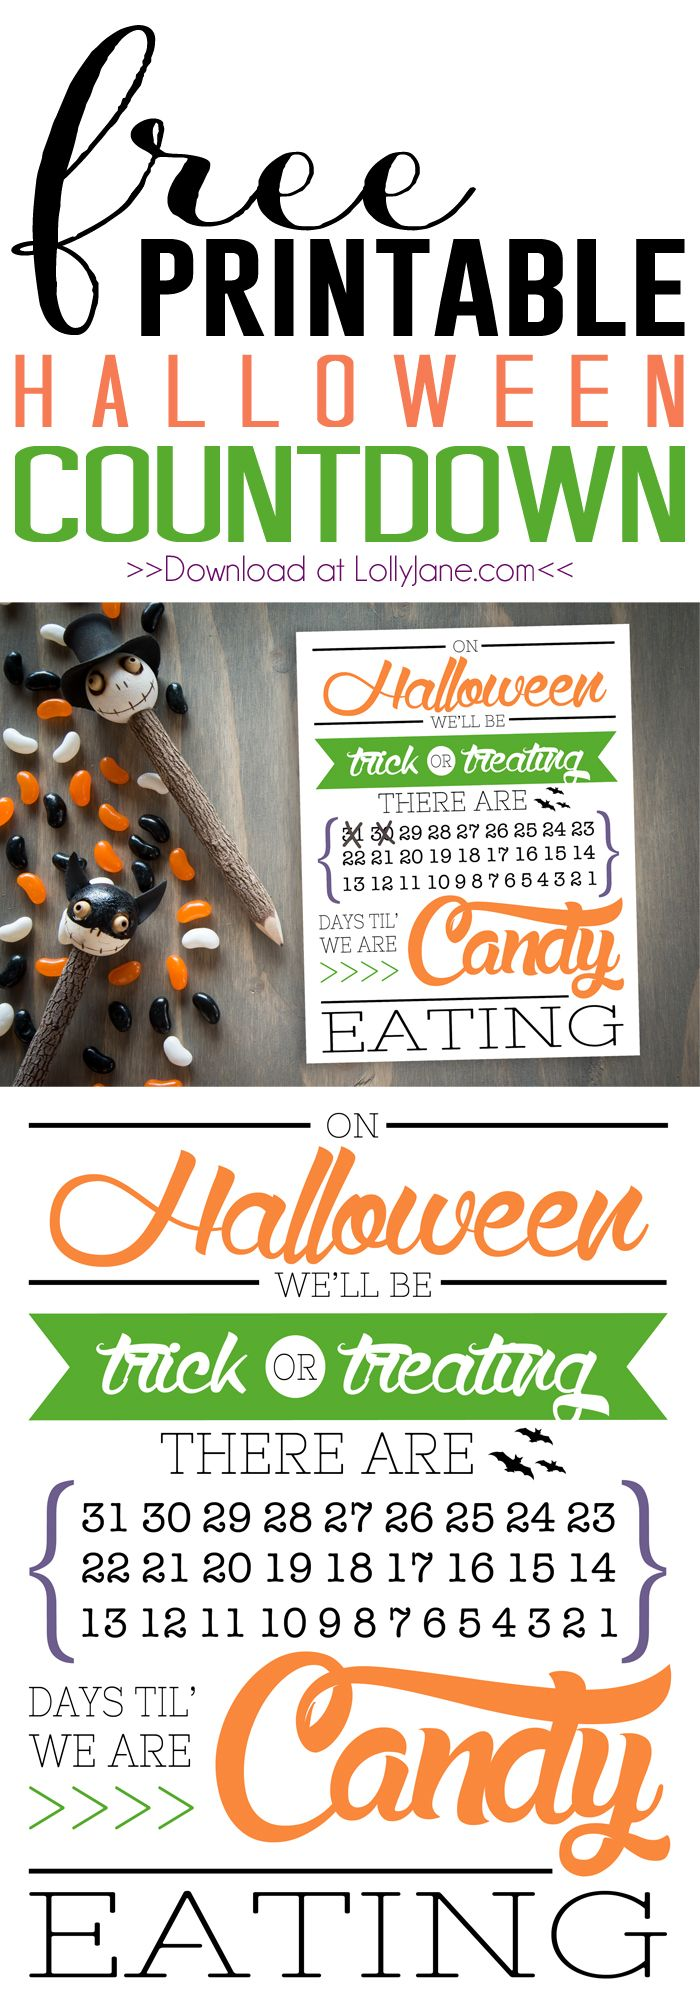 Cute DIY Halloween countdown. Fun holiday decor idea.